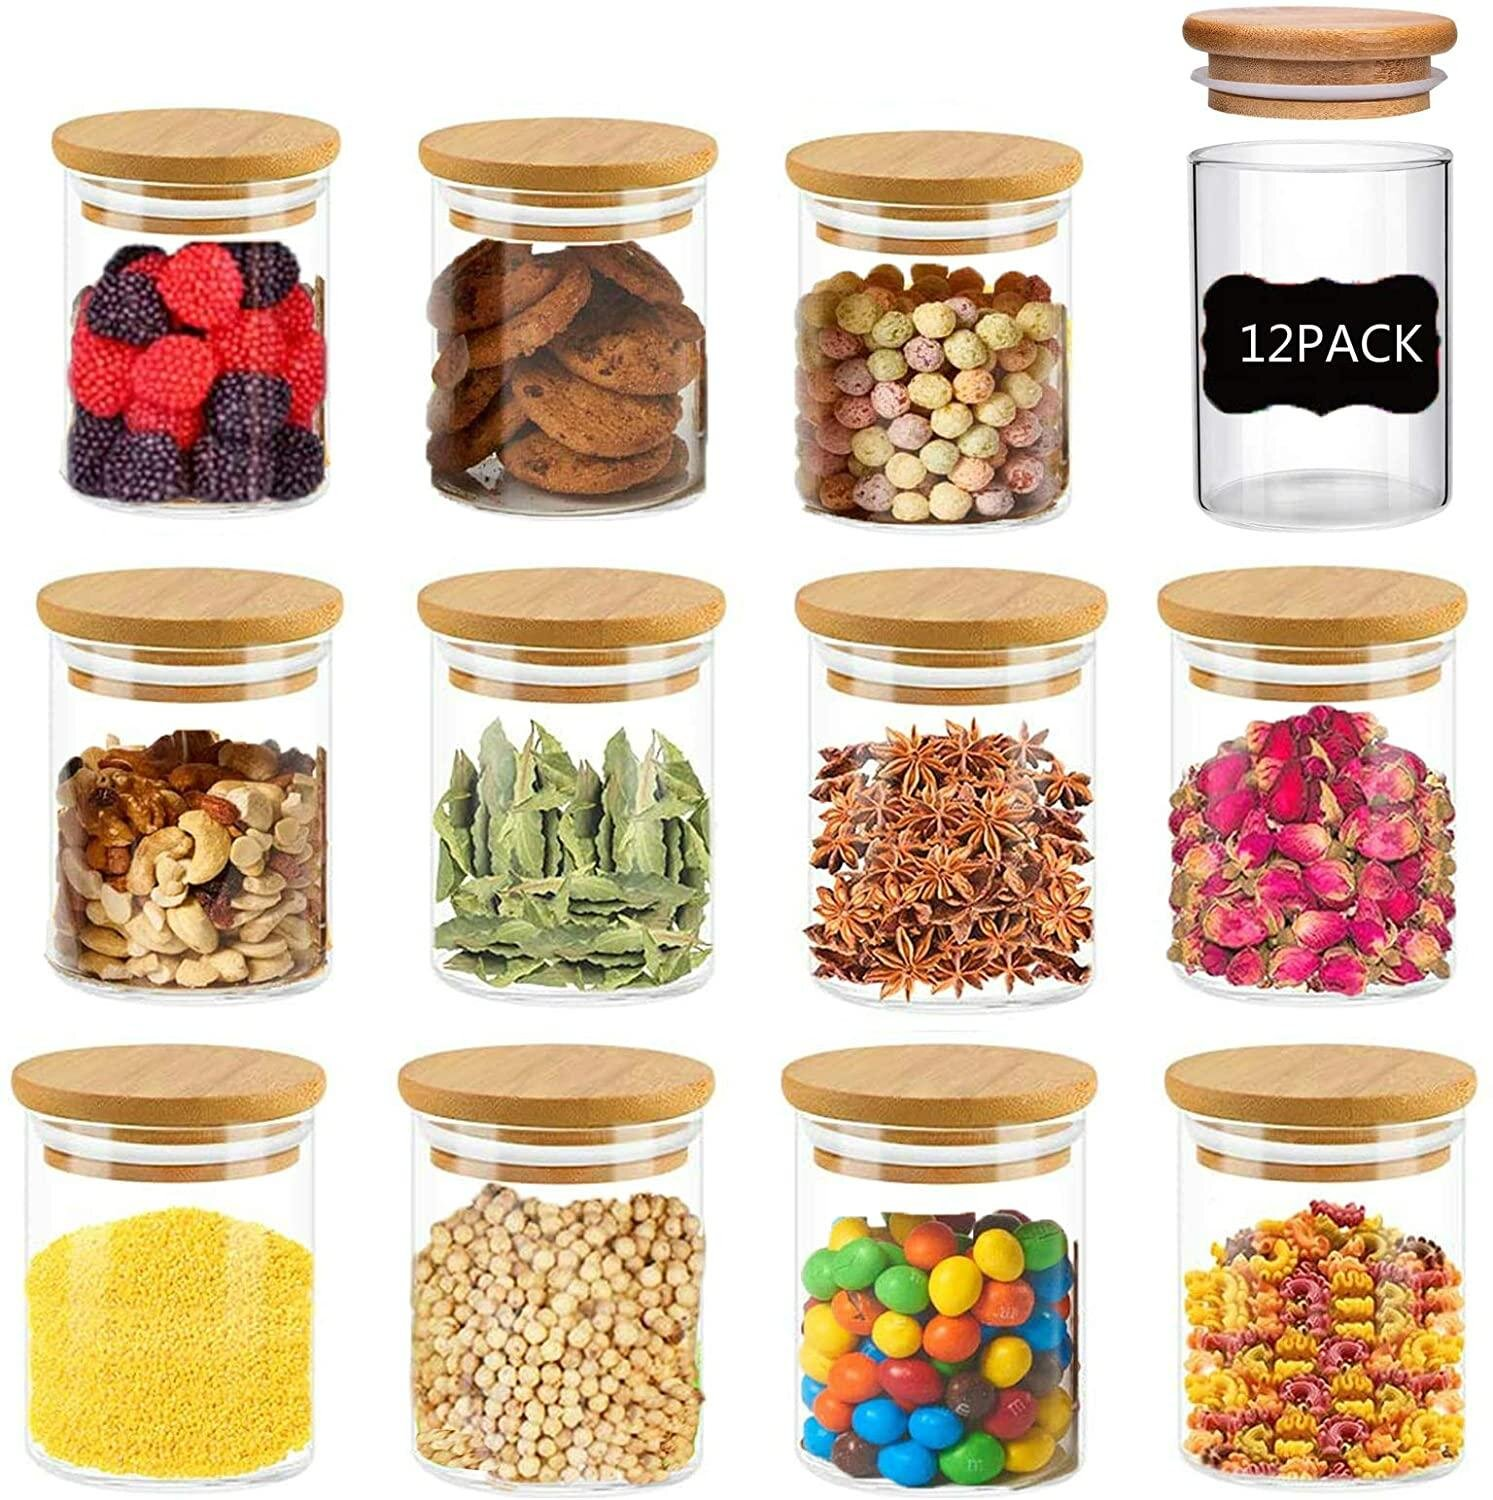 Glass Jars With Wood Lids, 9Ml /9Oz Mini Clear Glass Airtight Spice  Jars,9 PCS Small Food Storage Containers For Home Kitchen, Tea, Herbs,  Sugar, ...